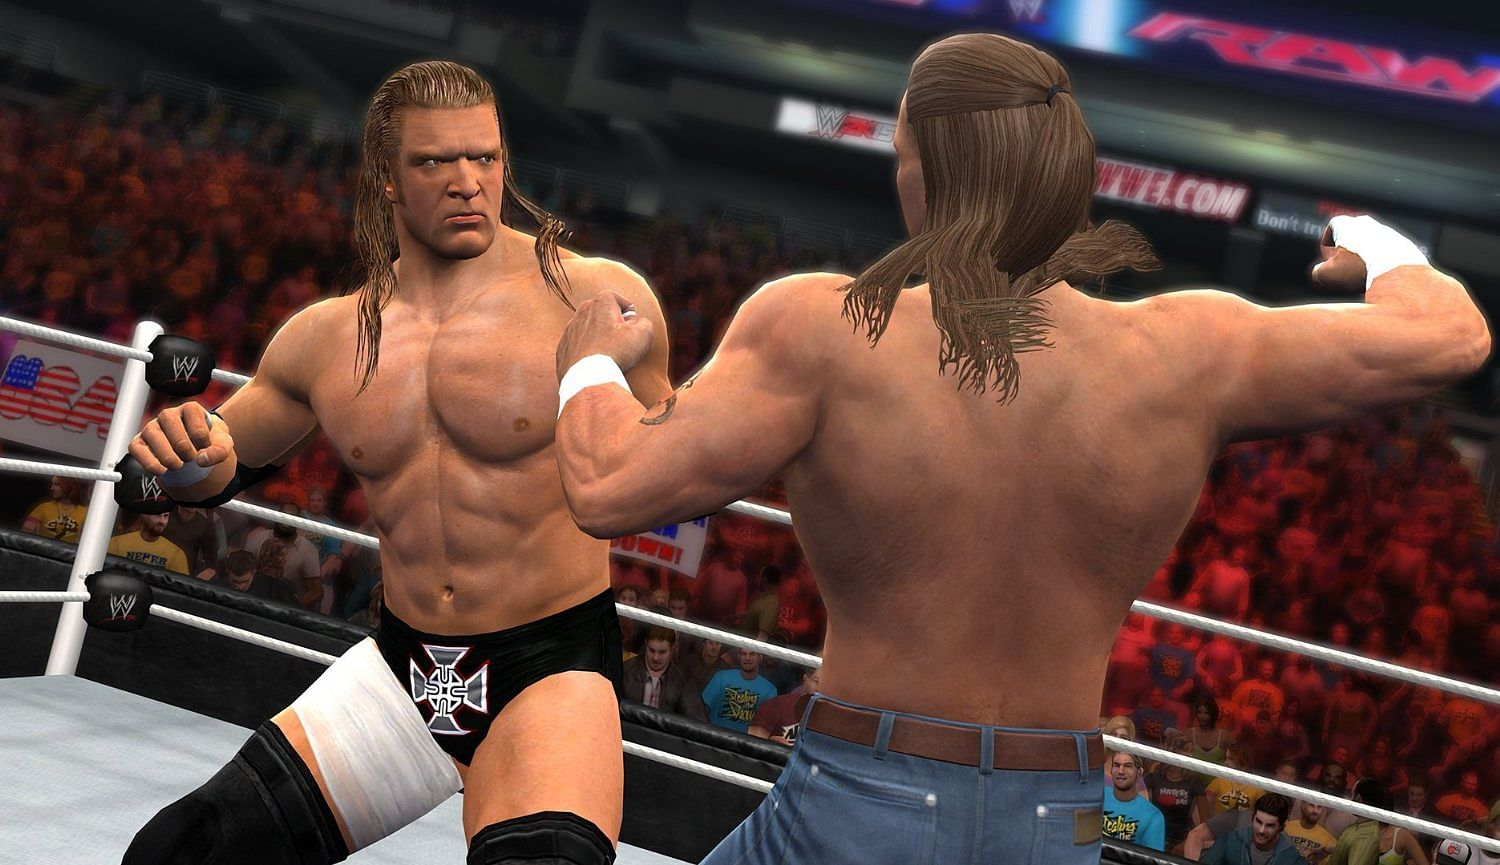 More screenshots revealed for WWE 2K15